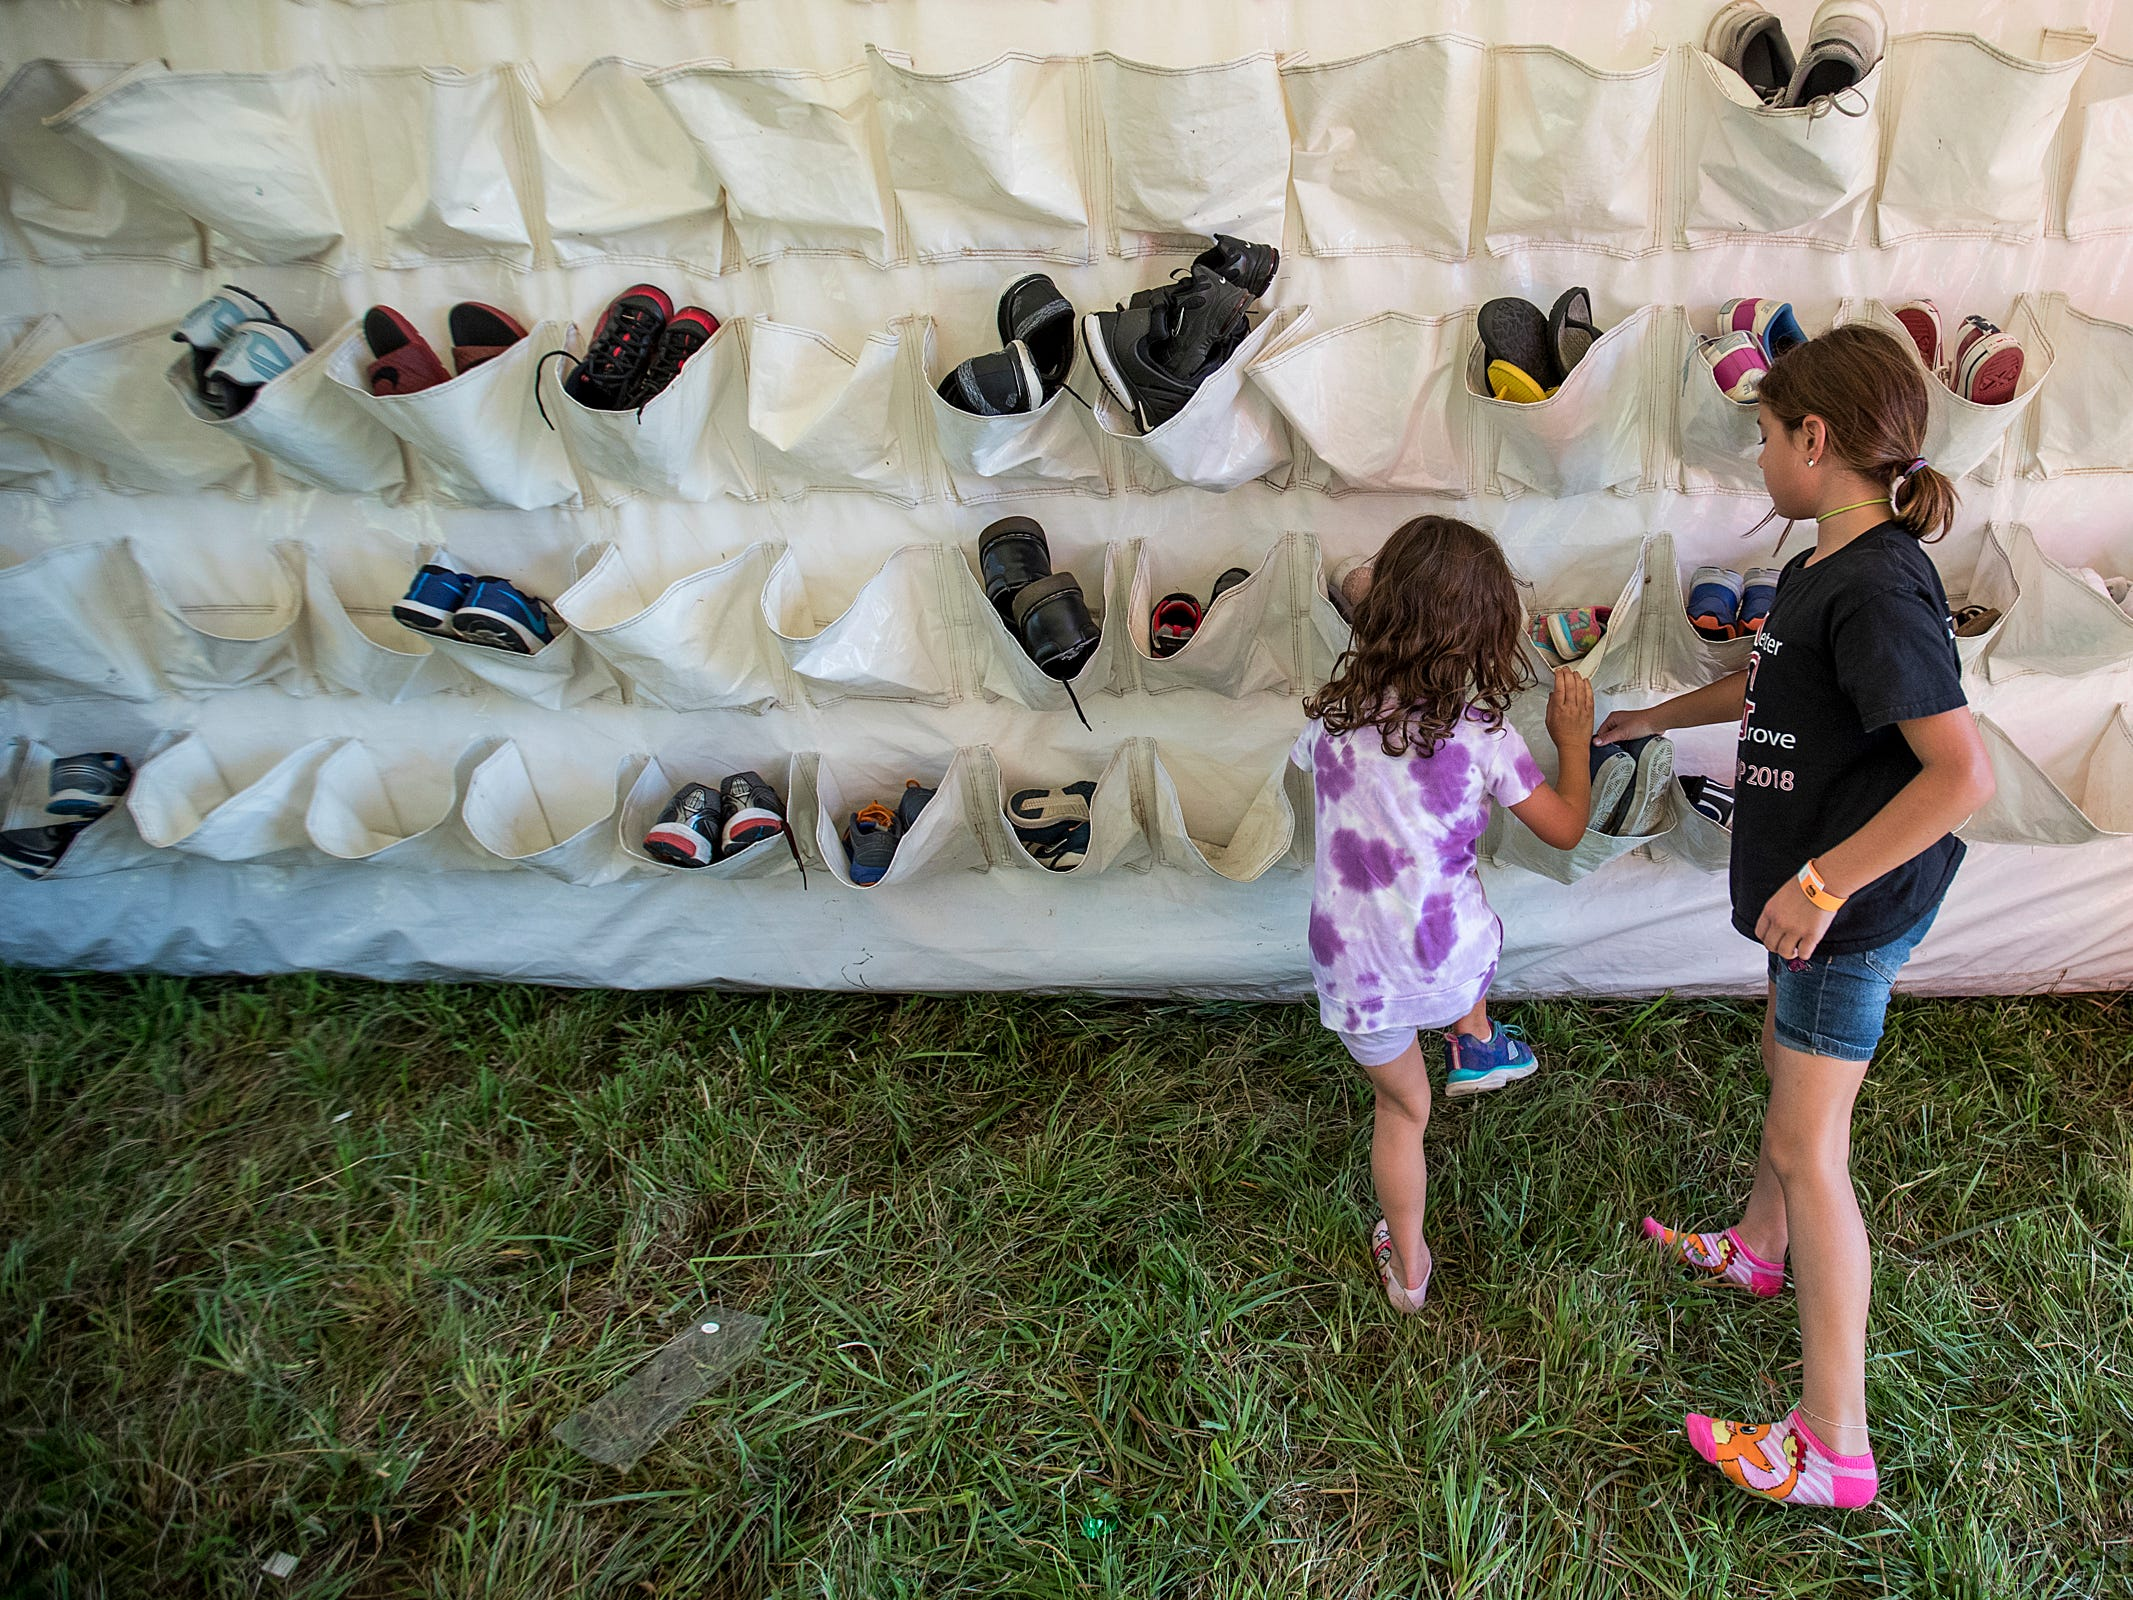 Children leave their shoes as they head for the Big Bounce America inflatable attraction at Waterman's Family Farm in Indianapolis, Friday, Sept. 14, 2018. The world's largest bounce house covers 10,000 square feet and will be in Indy though September 16.